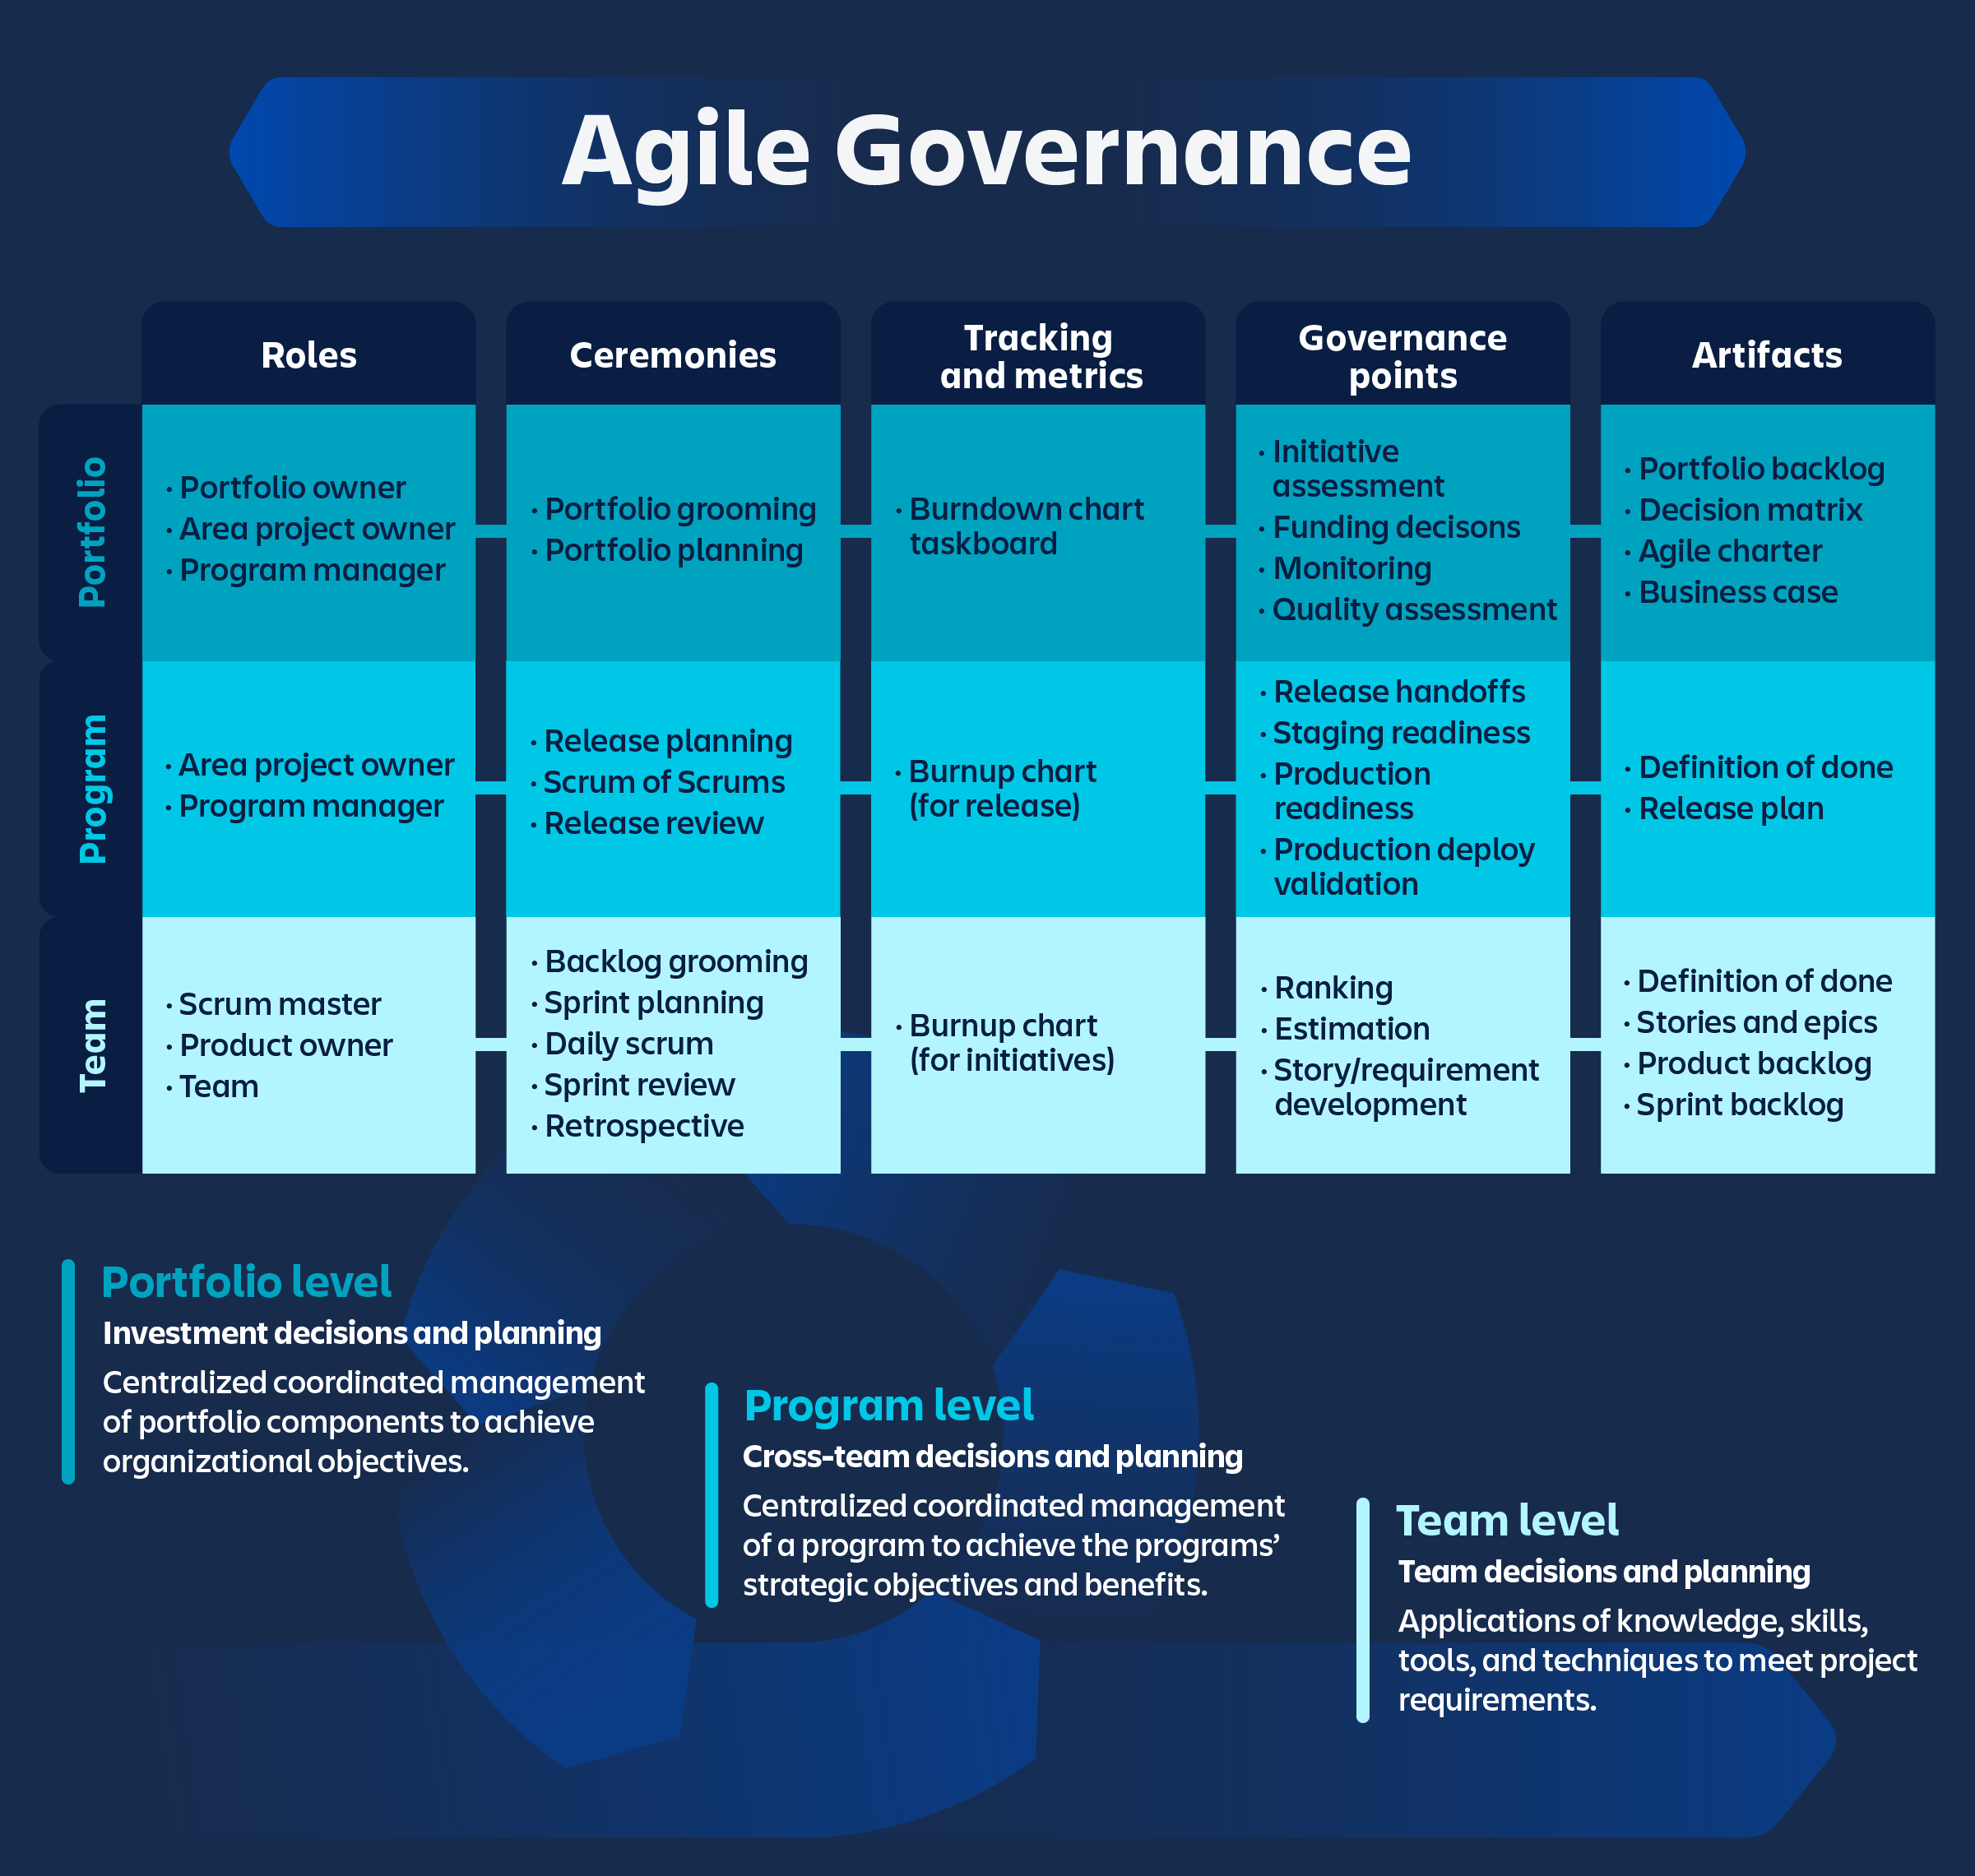 Agile governance chart and description